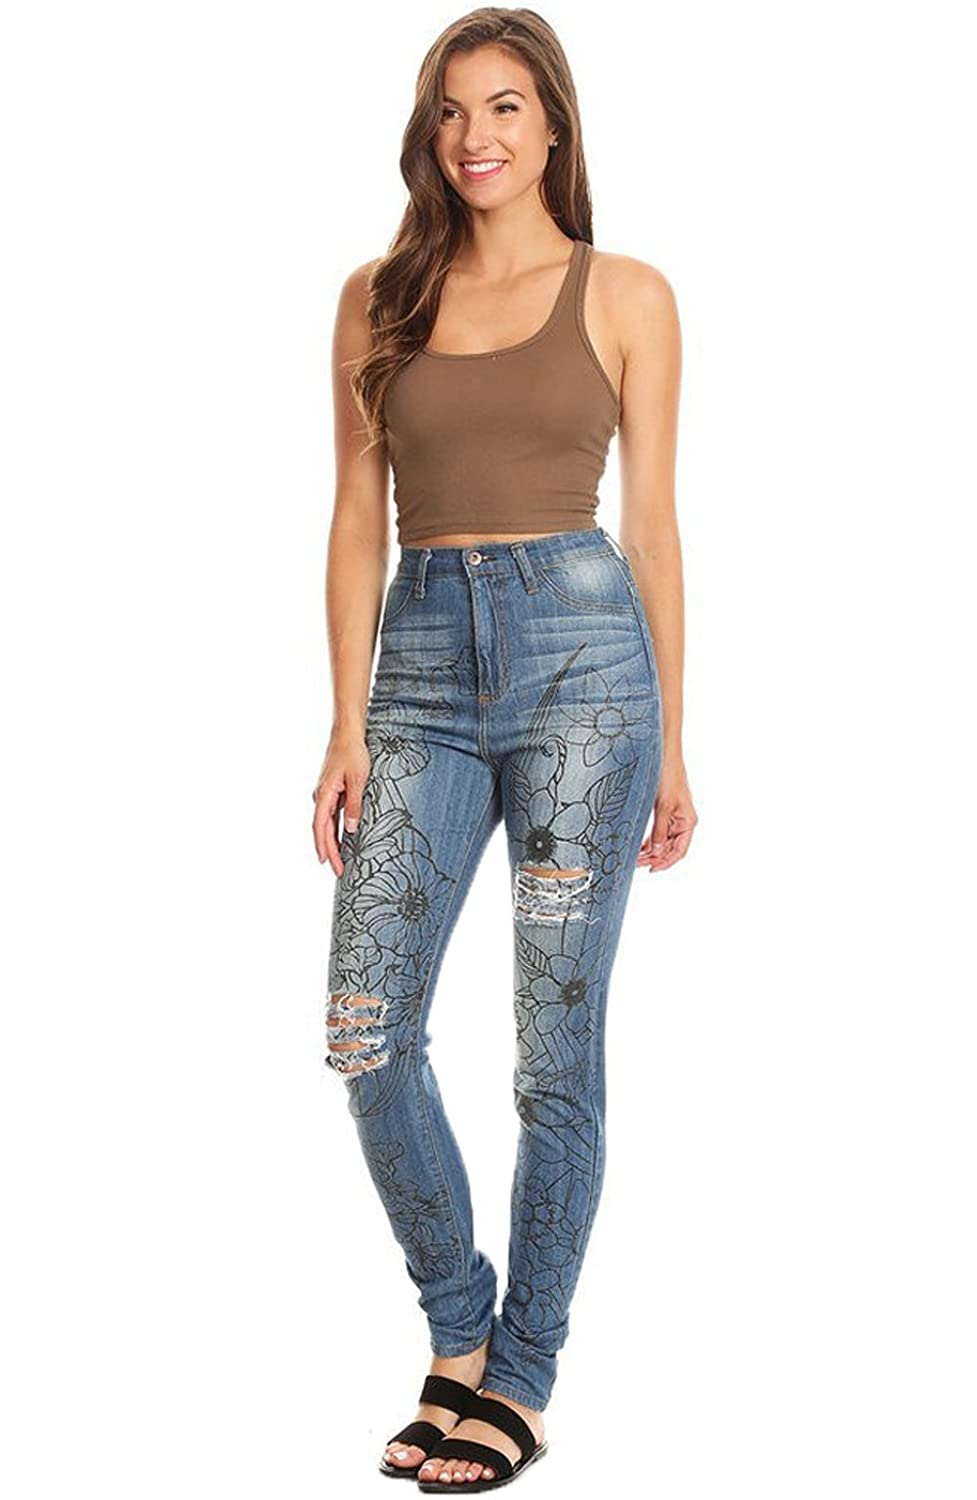 6c6bf5a072 JJ-GOGO Mid Waist Jeans - Womens Skinny Ripped Hole Jeans Push up Casual Slim  Fit Long Jeans Trousers at Amazon Women's Jeans store